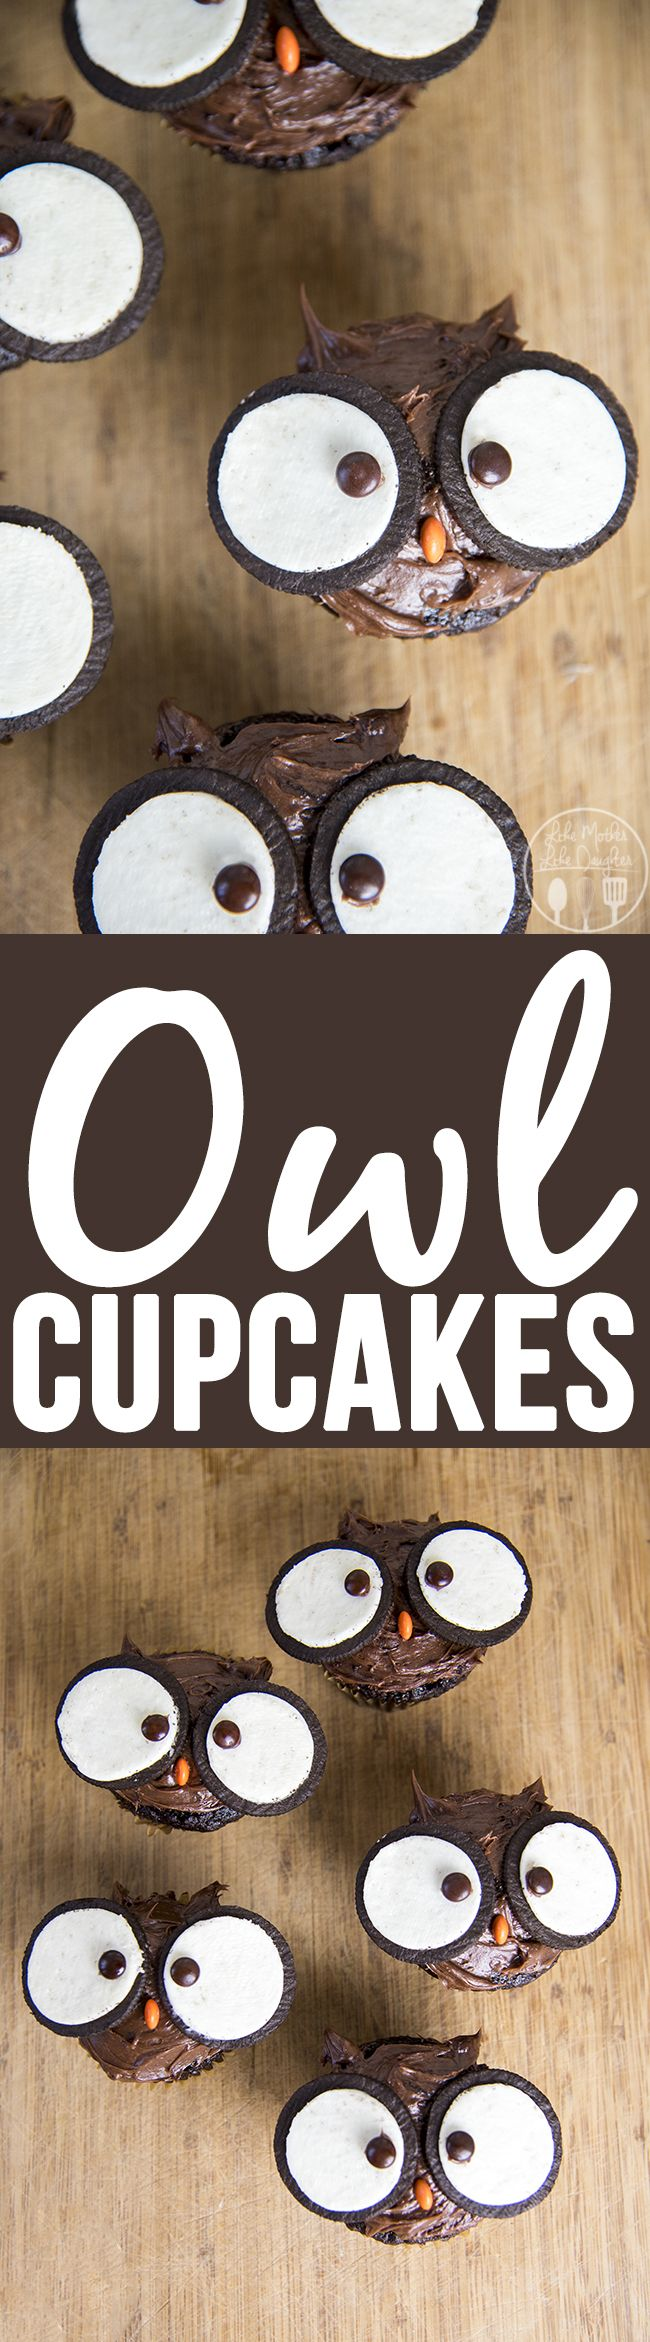 Owl Cupcakes - These adorable owl cupcakes are simple to make with just a few…